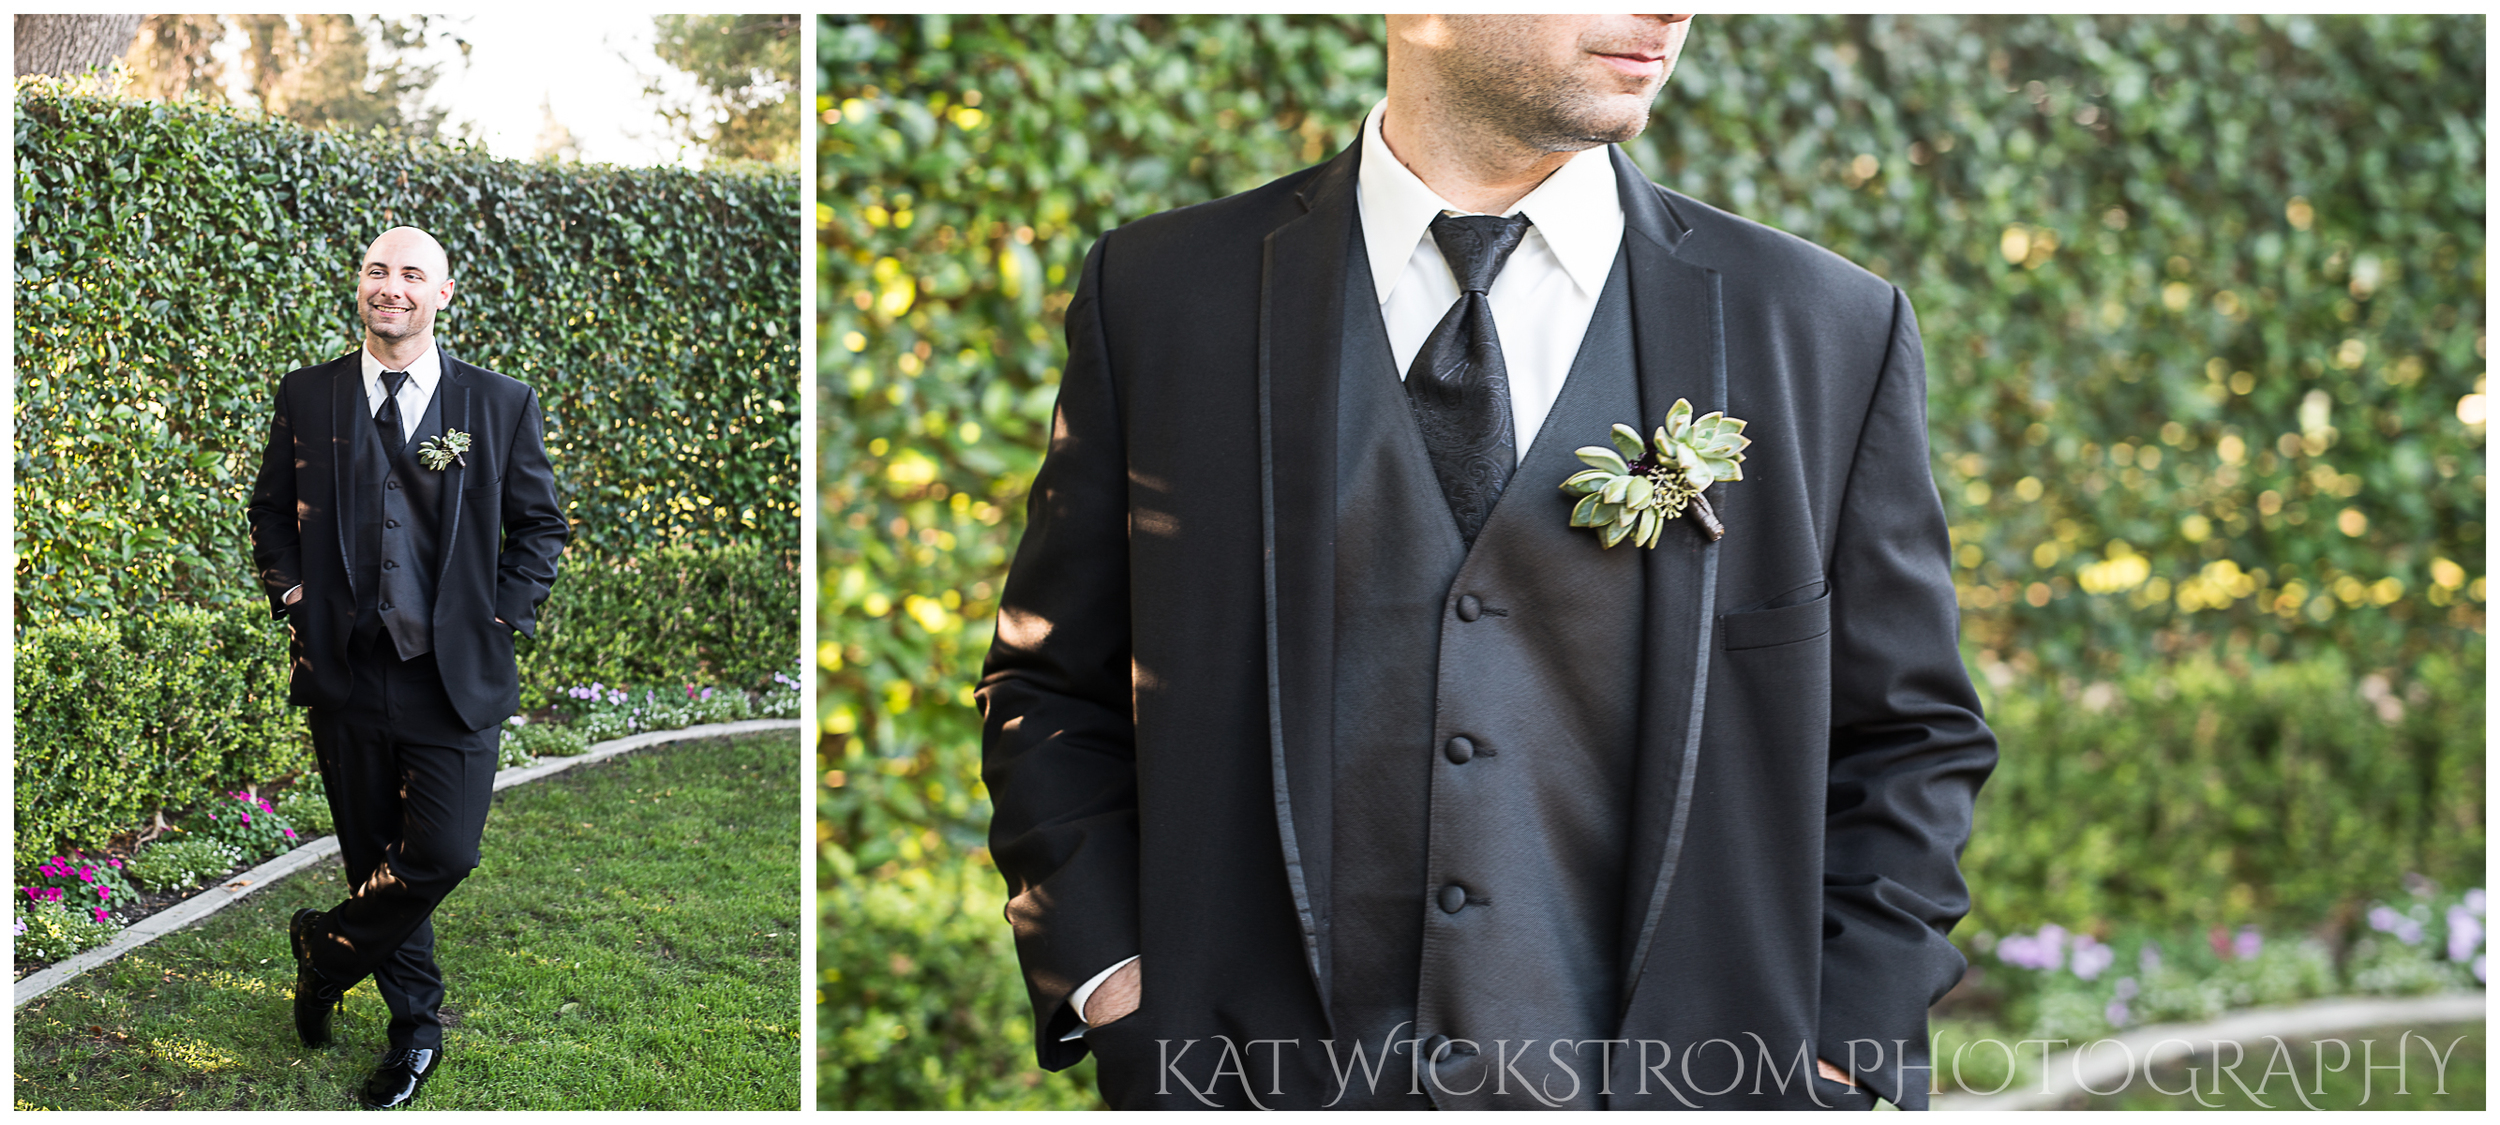 And how dapper does Mick look?! The groom wore a succulent boutonniere and rocked it.